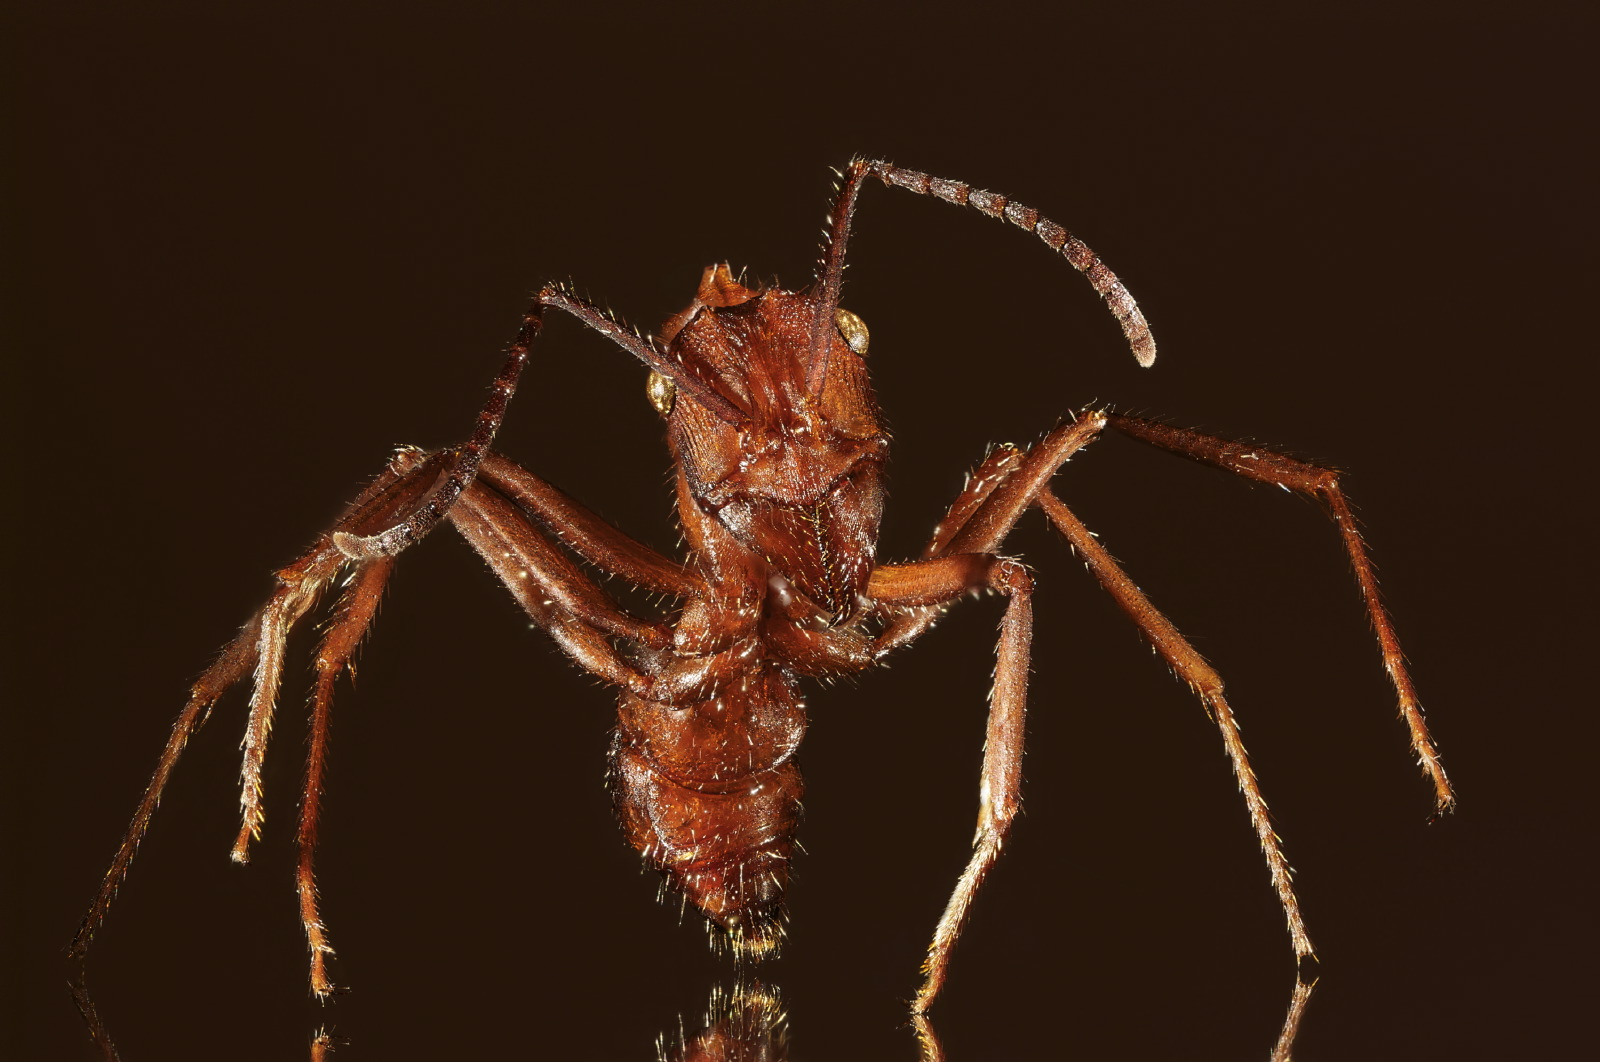 Ectatomma ant full body